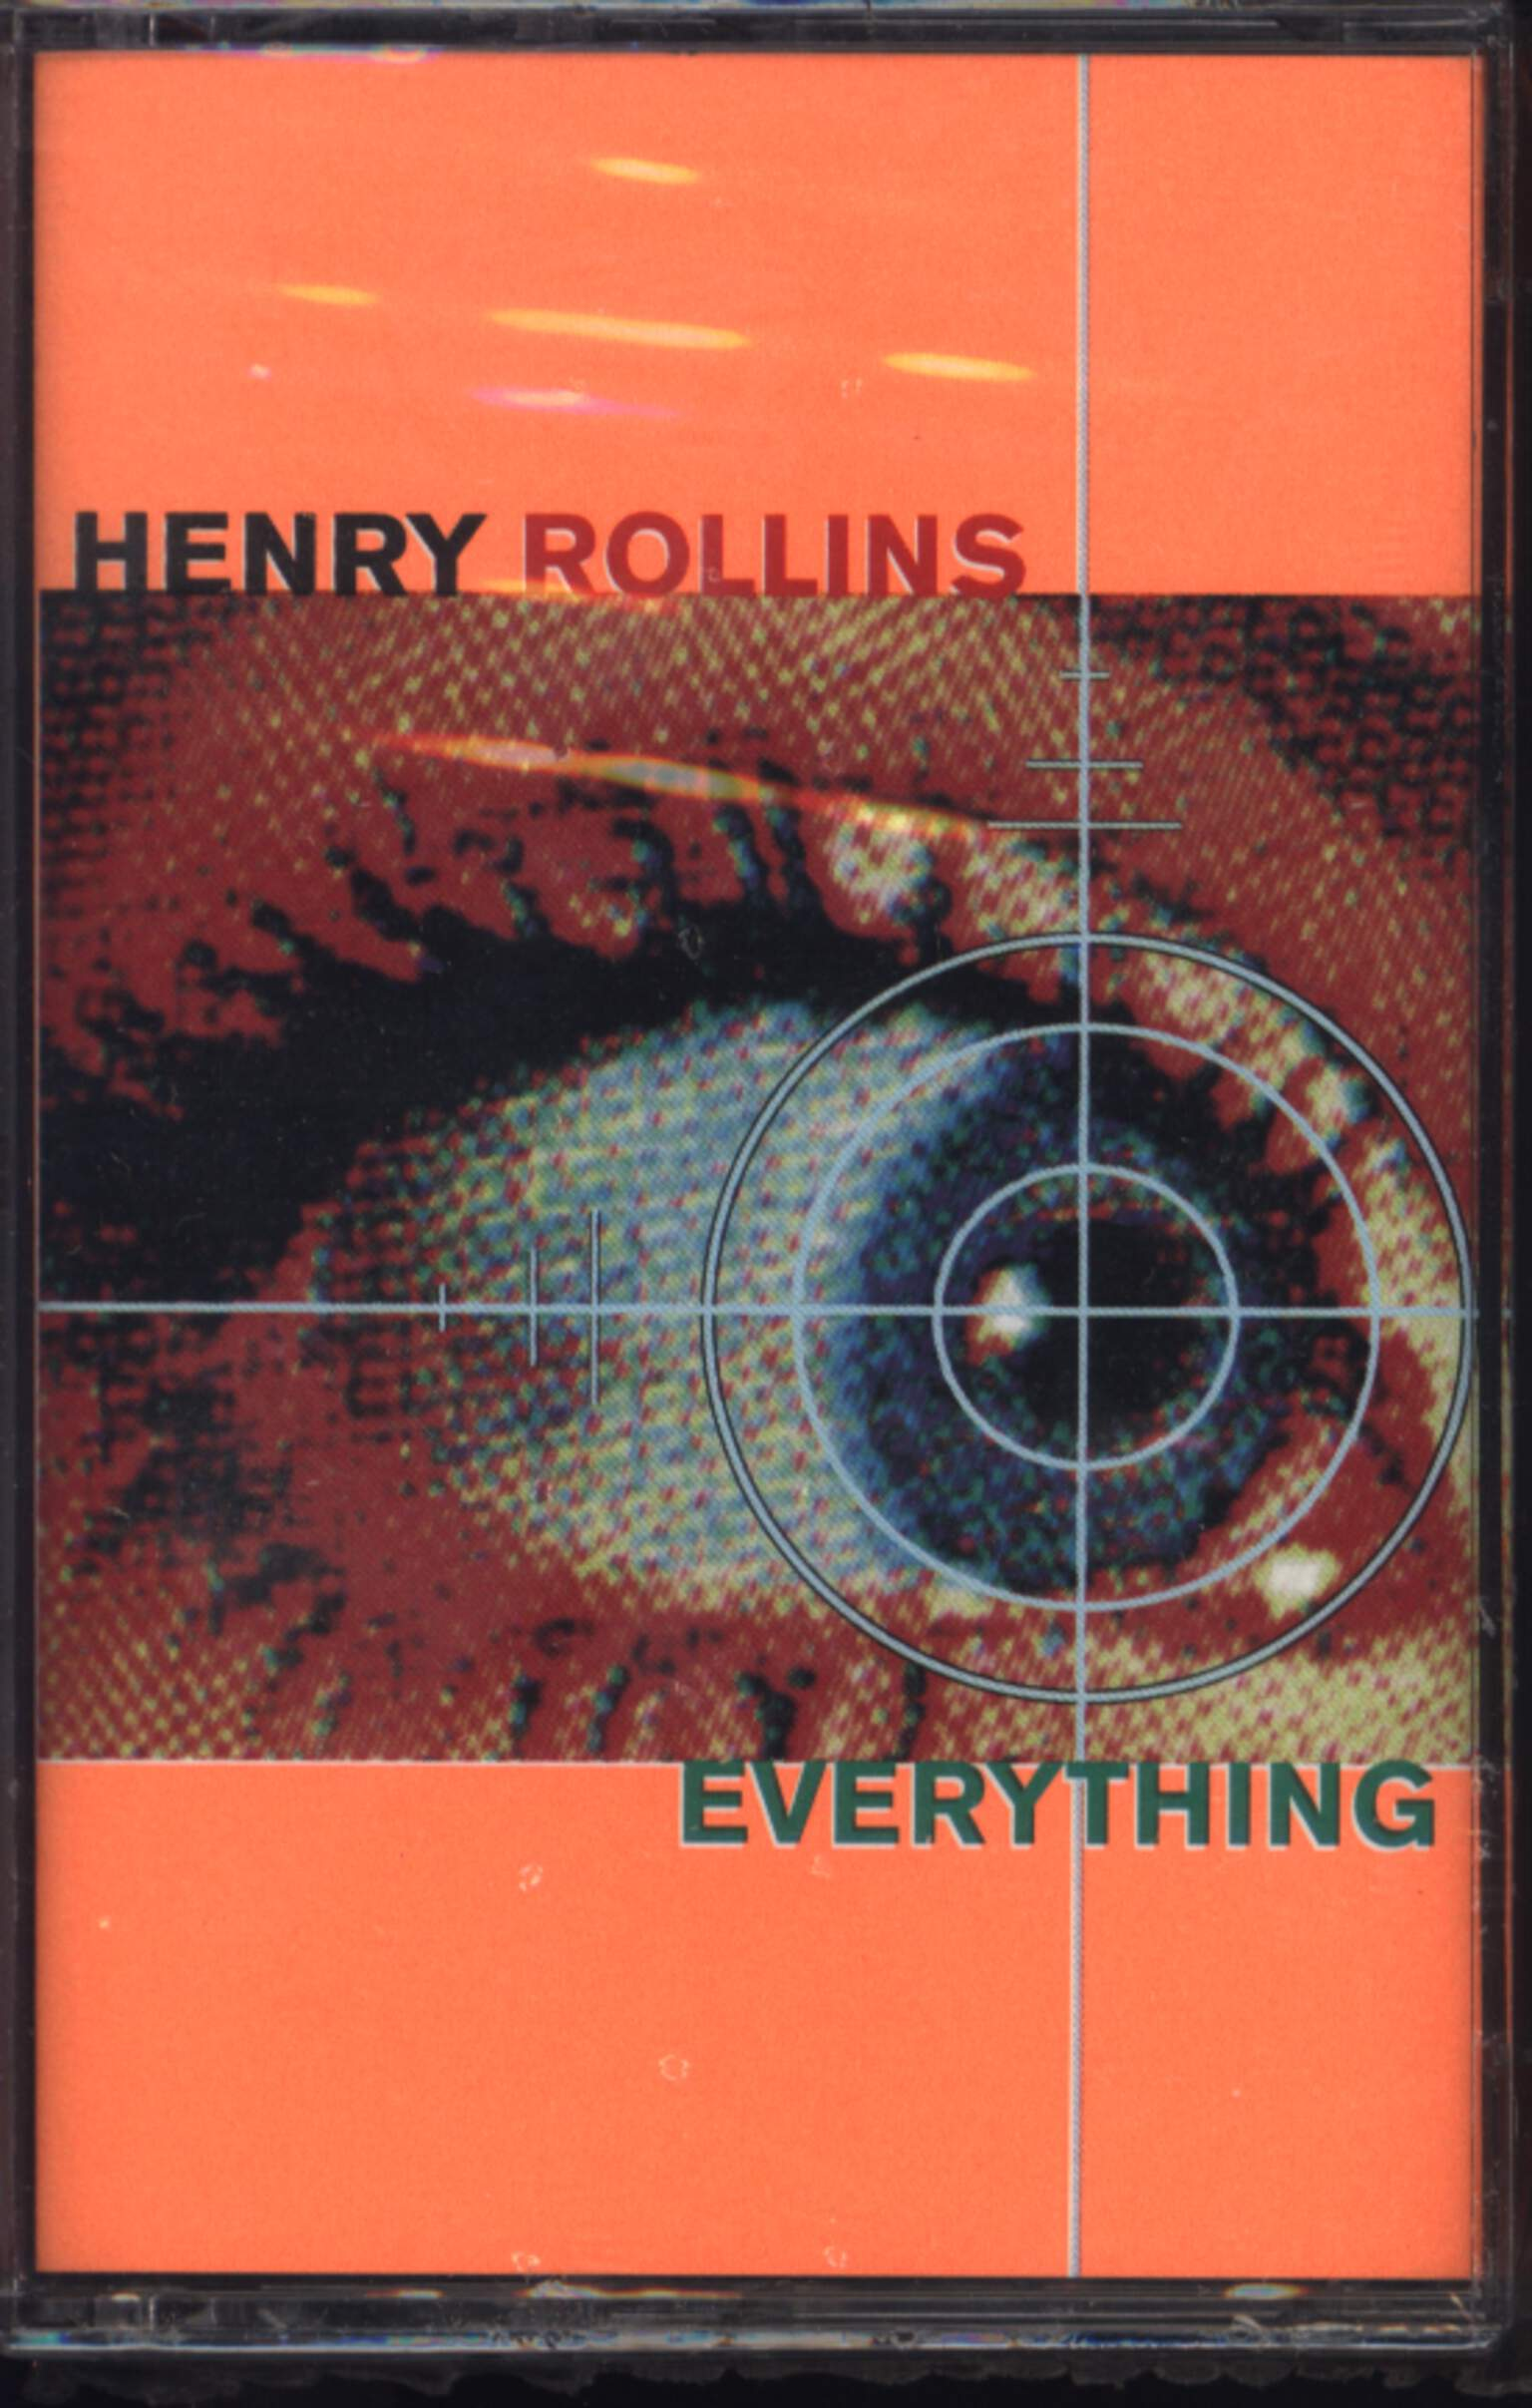 Henry Rollins: Everything, Compact Cassette